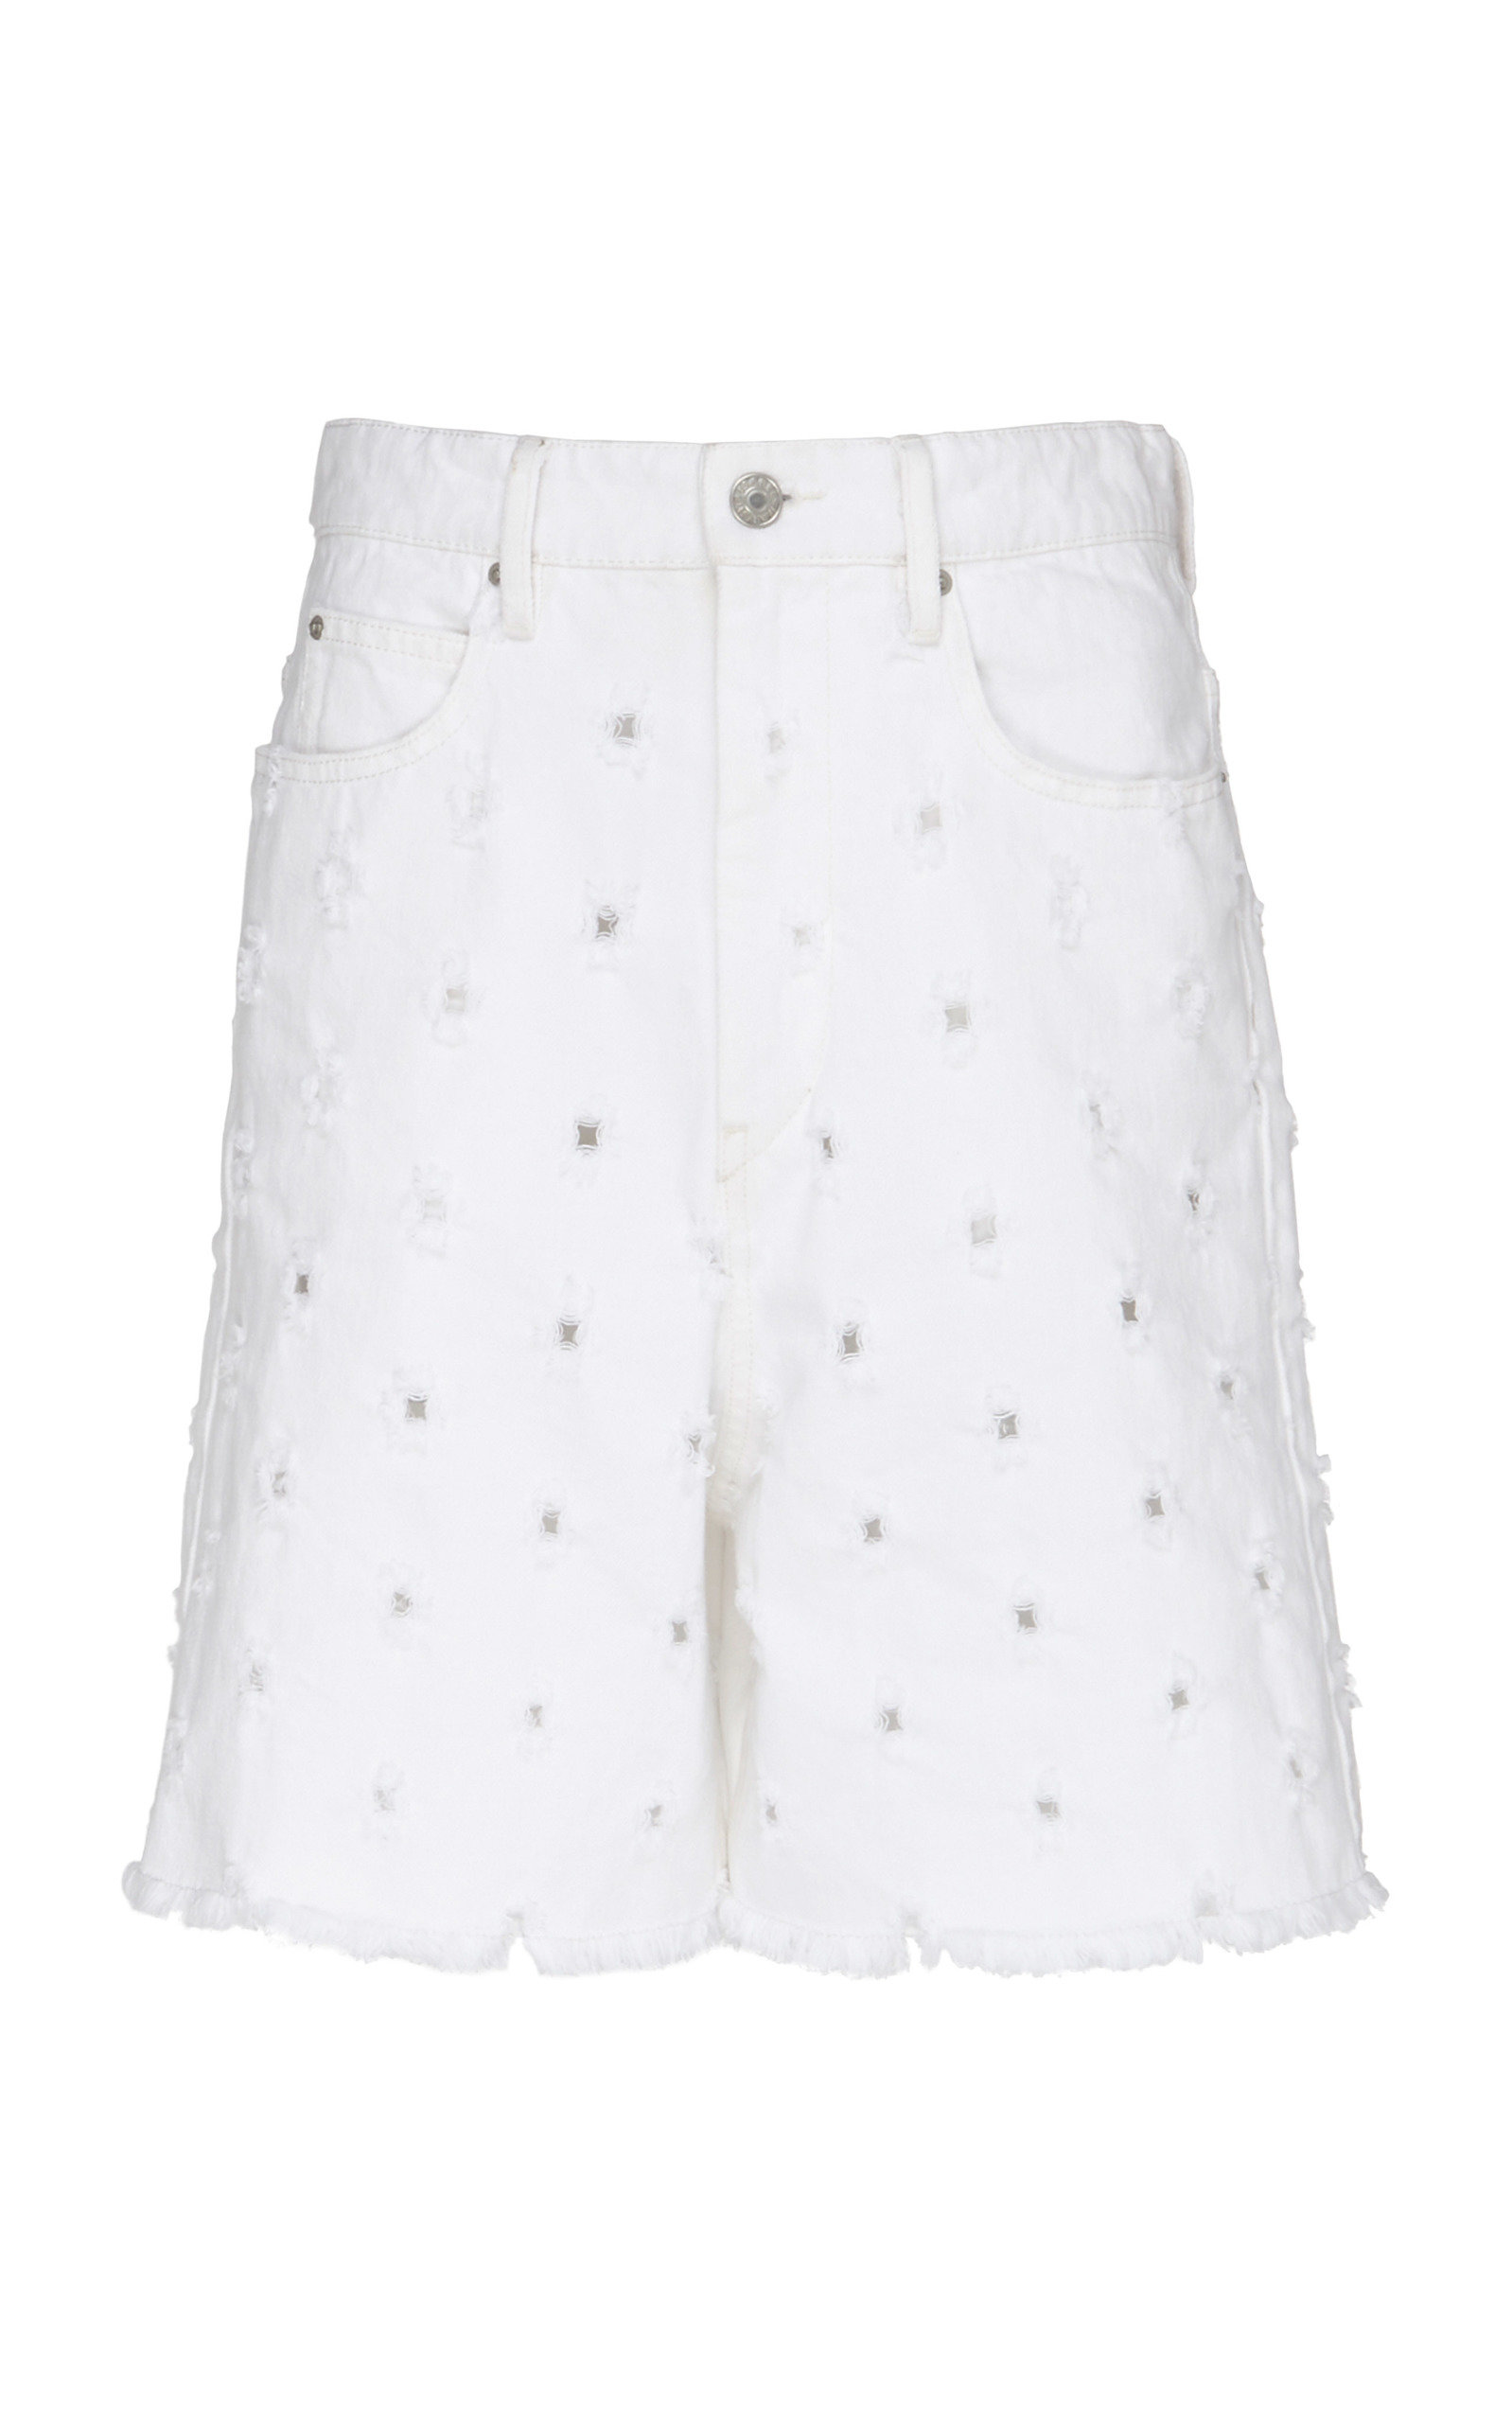 Liny Mid-Rise Frayed Denim Shorts With Holes in White